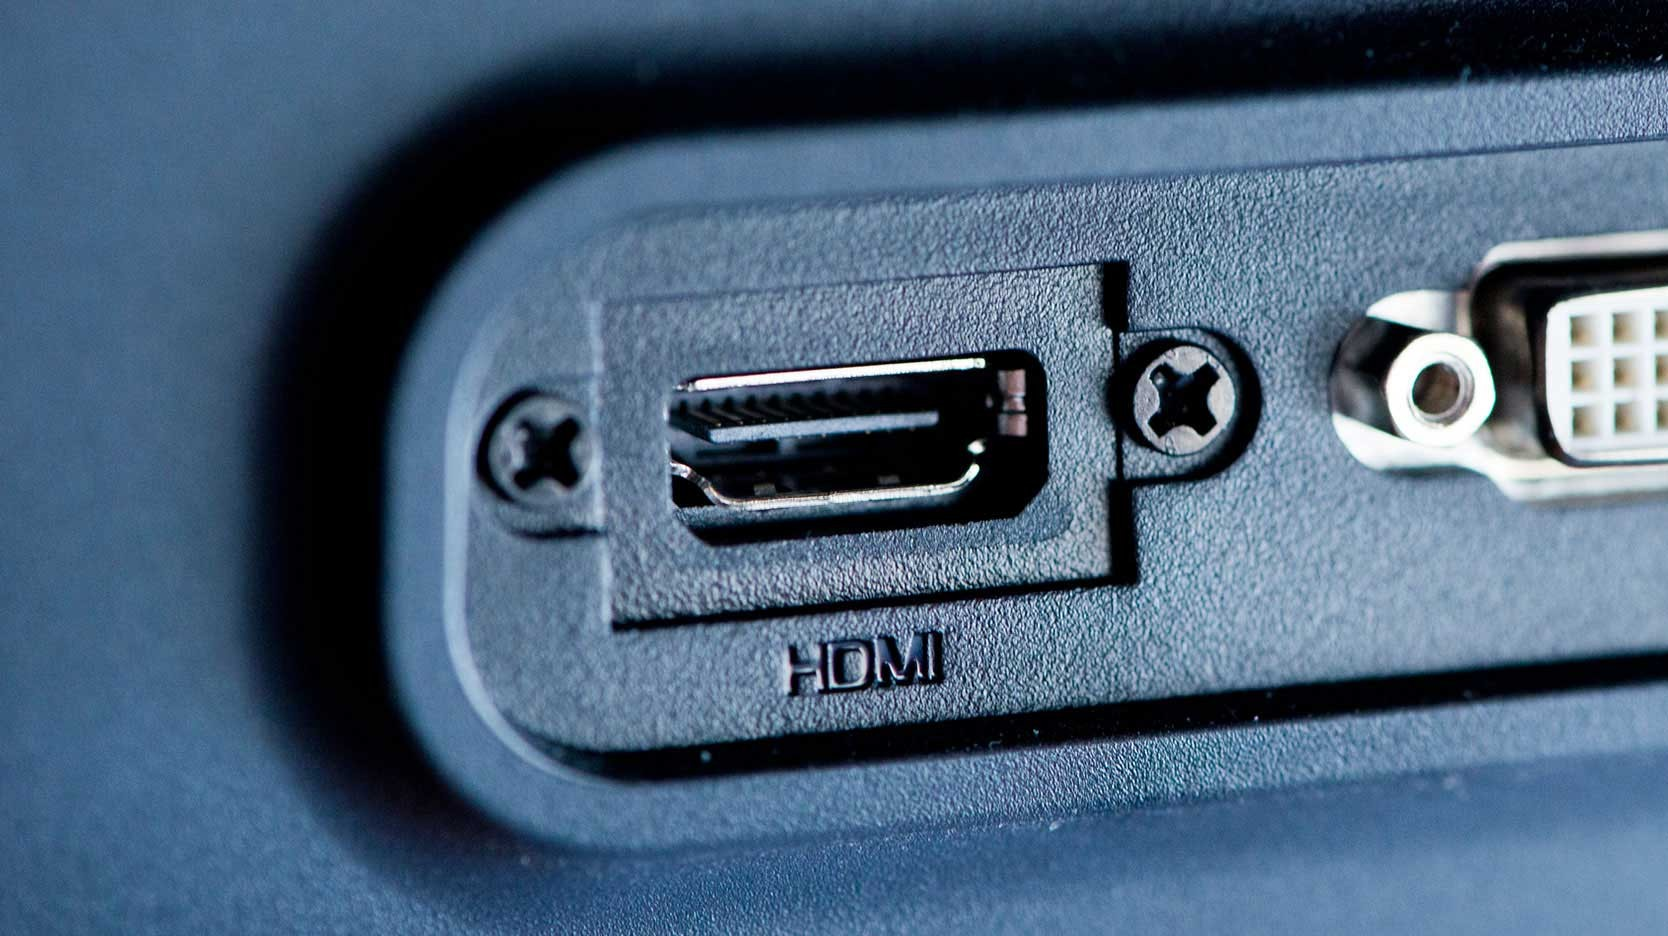 computer part HDMI port